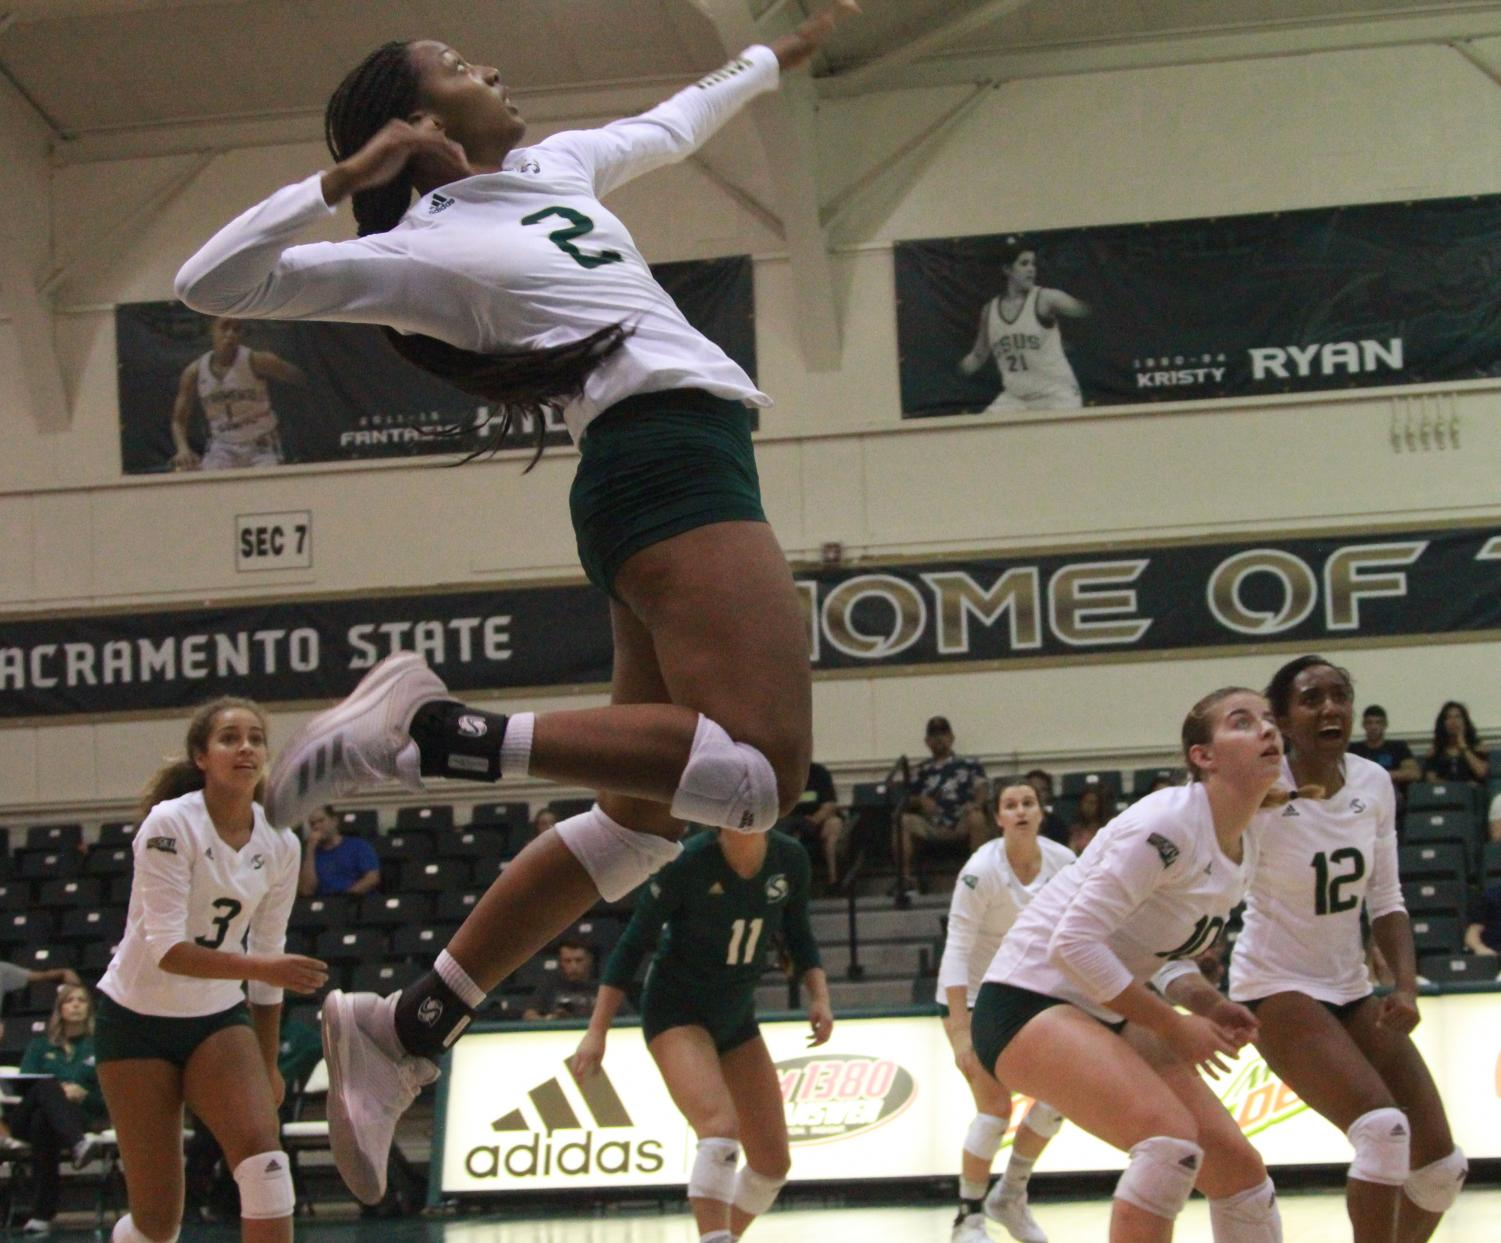 Sac State sophomore outside hitter Cianna Andrews anticipates striking the ball against the University of Nevada on Sept. 8.